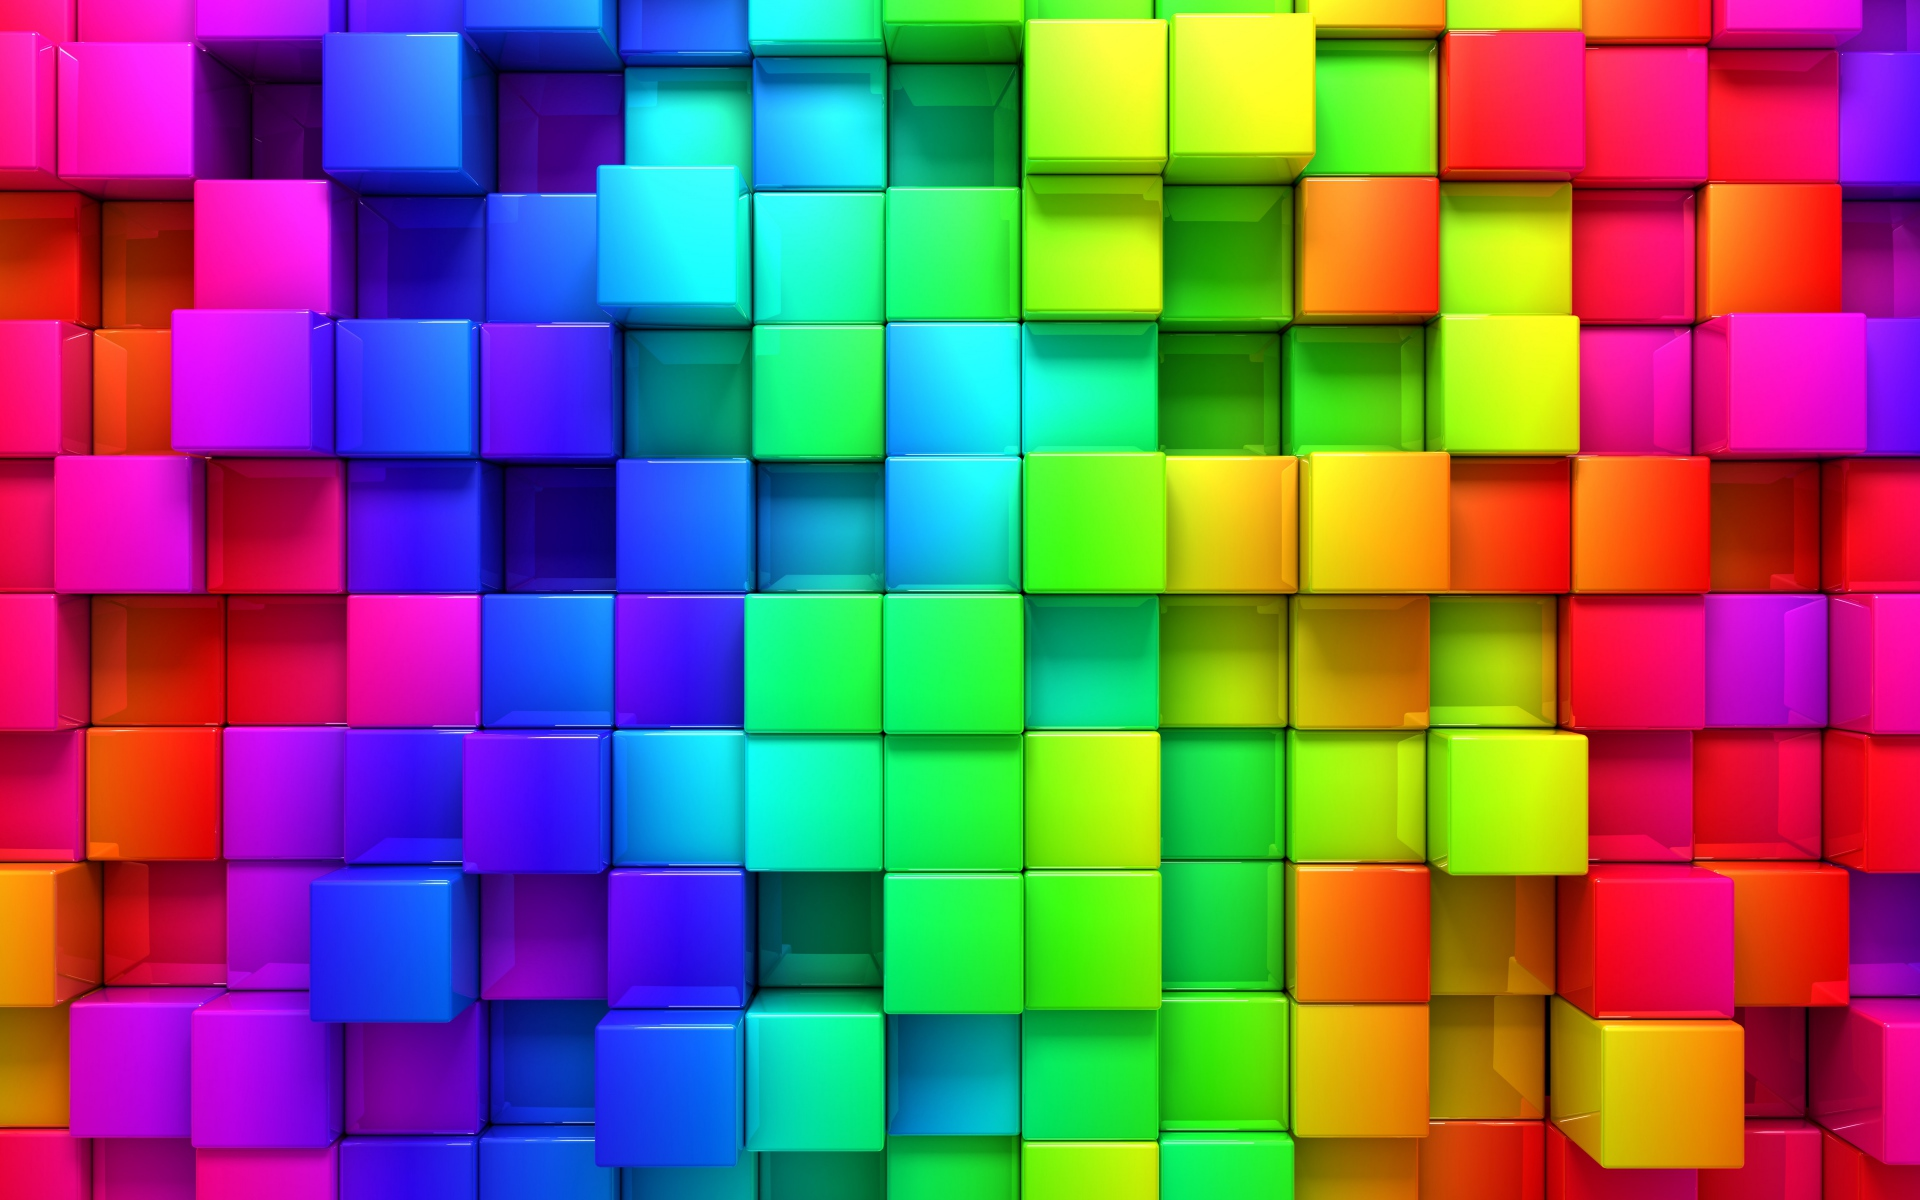 Amazing Colorful Backgrounds HQ